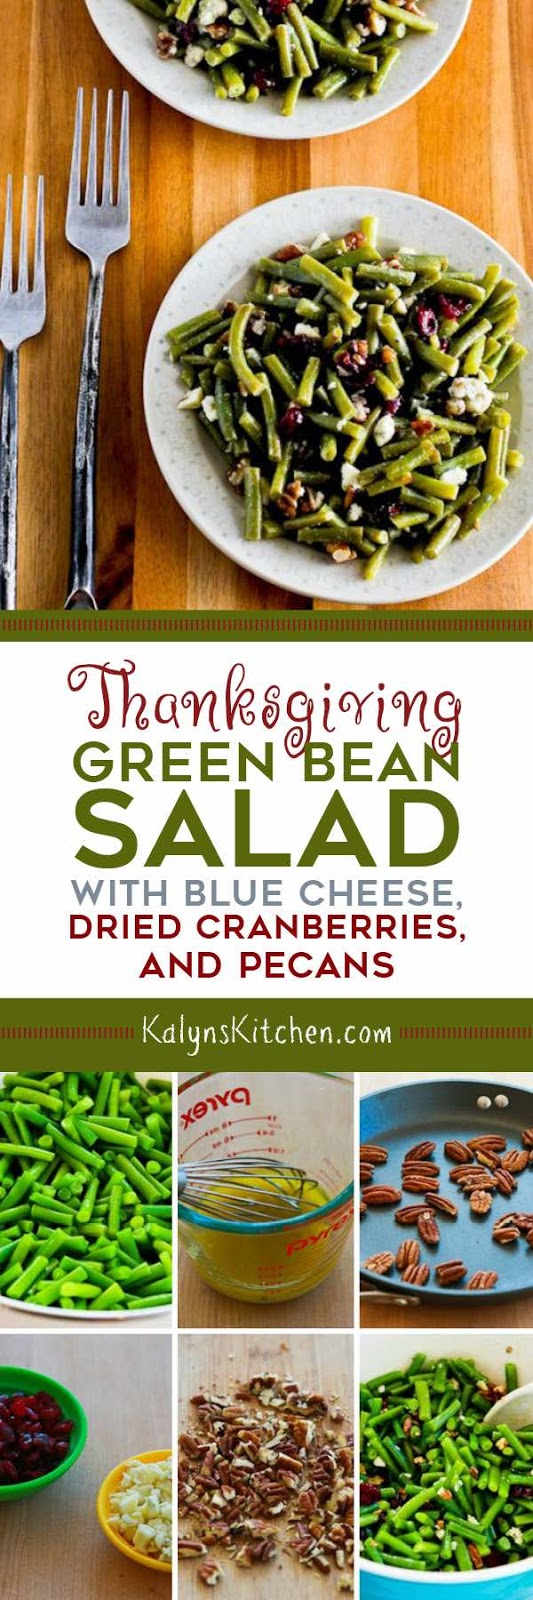 Green Bean Salad with Blue Cheese, Dried Cranberries, and Pecans ...